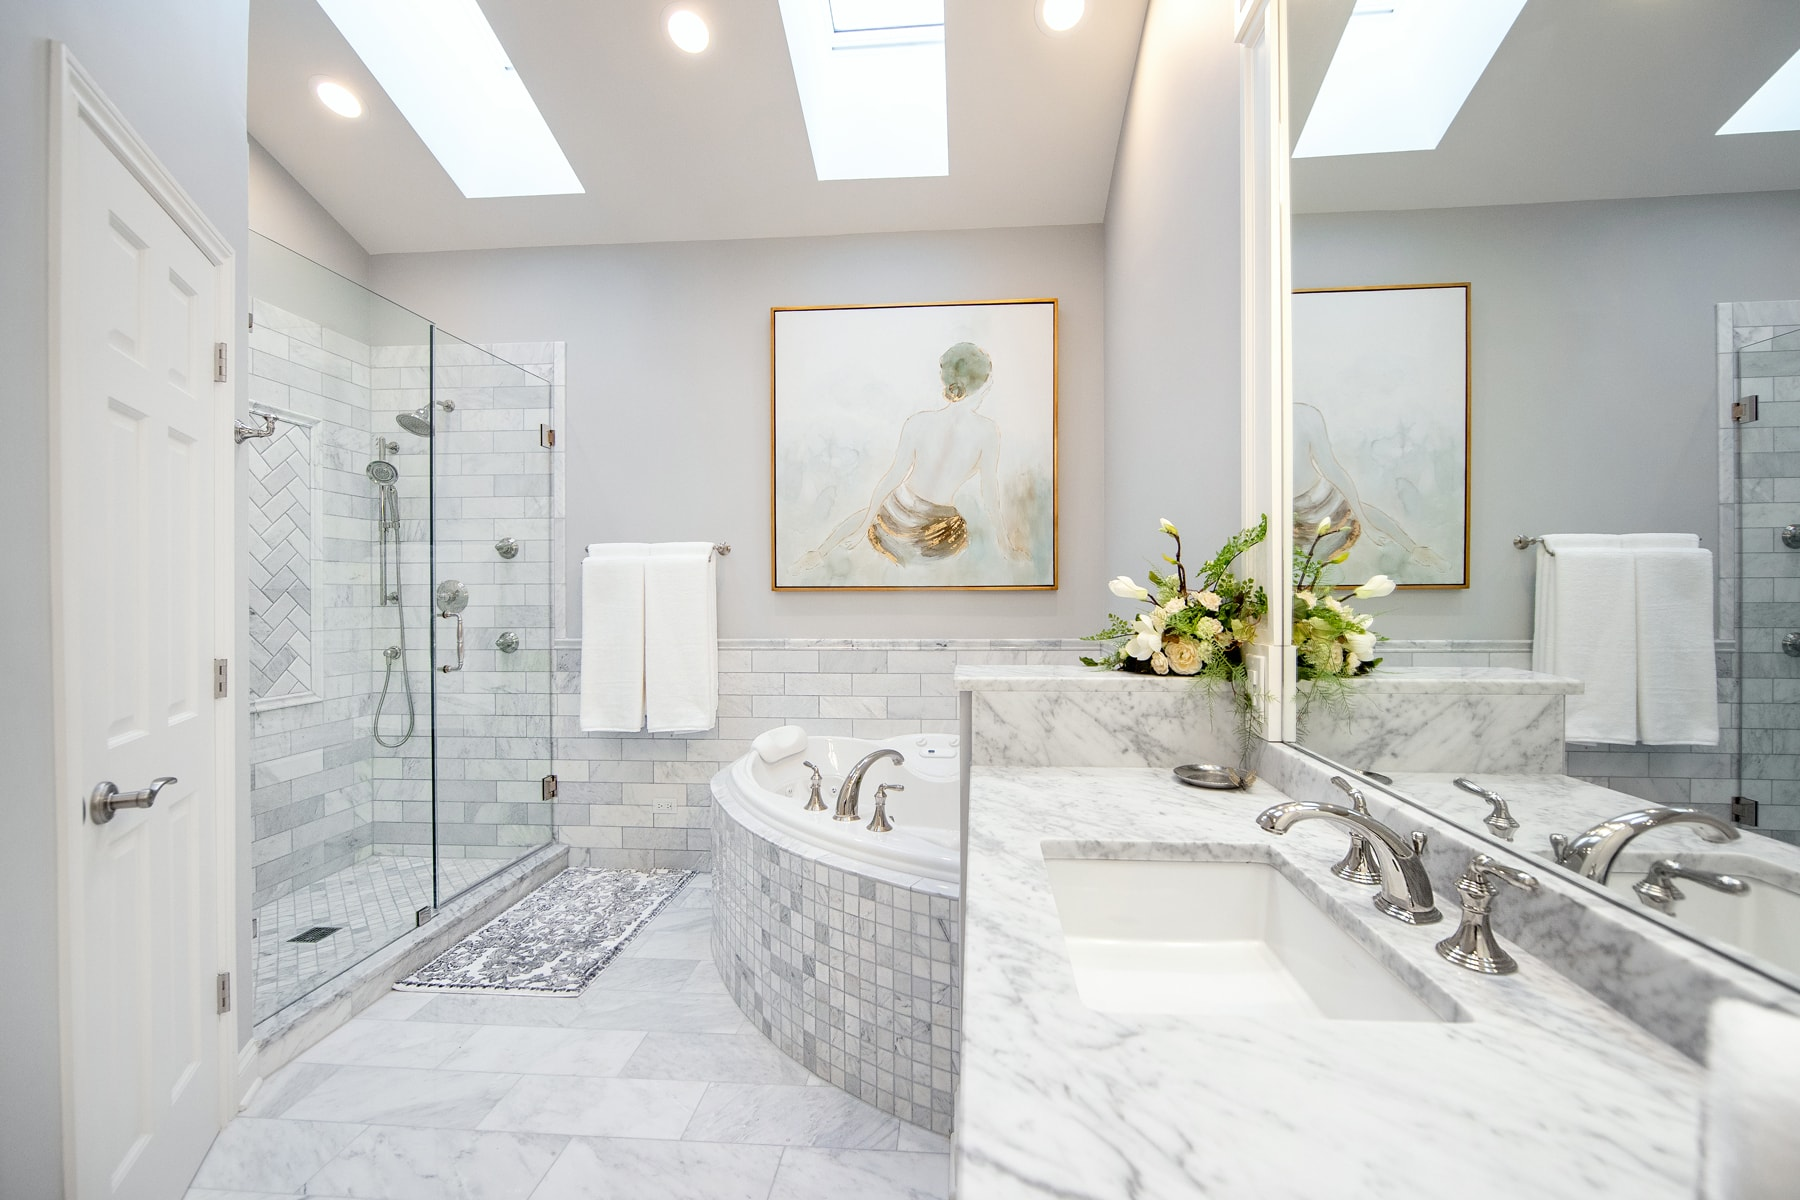 Luxurious Master Bathroom Remodel - Linly Designs on Restroom Renovation  id=38792